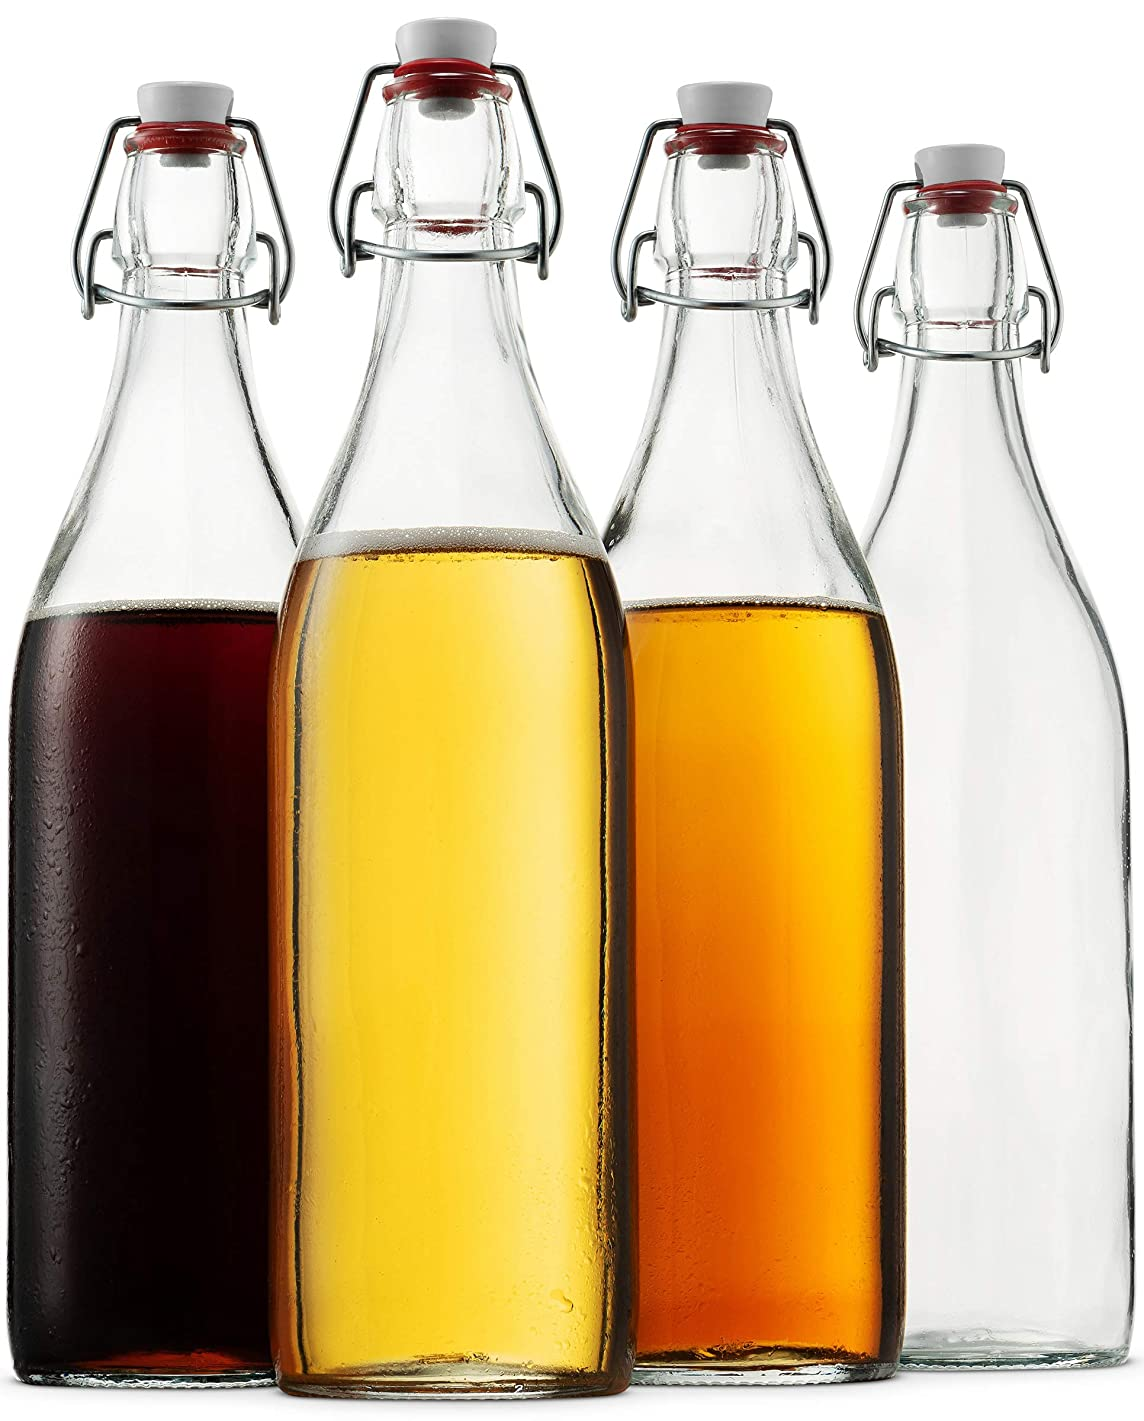 Bormioli Rocco Giara Clear Glass Bottle With Stopper [Set of 4] Swing Top Bottles Great for Beverages, Oil, Vinegar | 33 3/4 oz